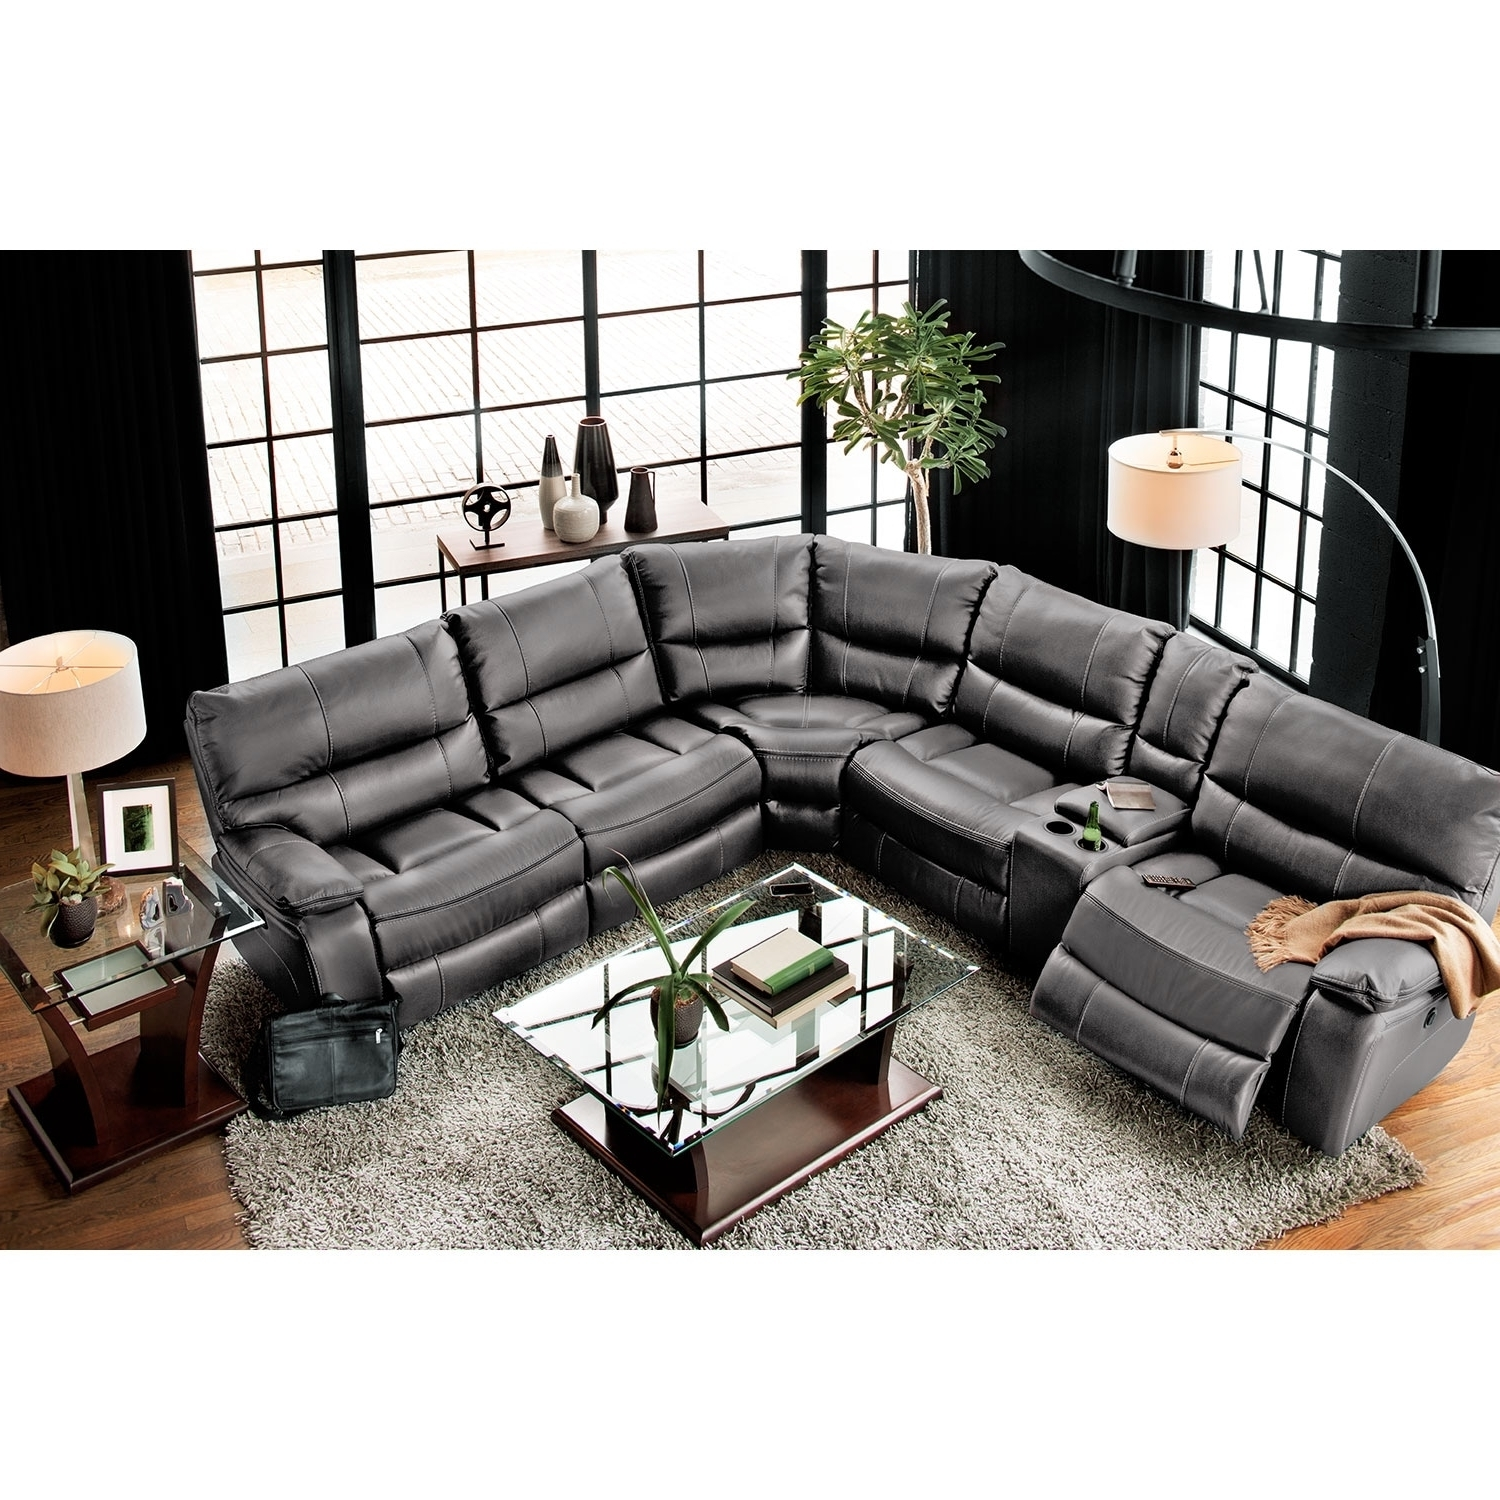 Orlando Sectional Sofas With Most Recently Released Orlando 6 Piece Power Reclining Sectional With 1 Stationary Chair (Gallery 3 of 15)